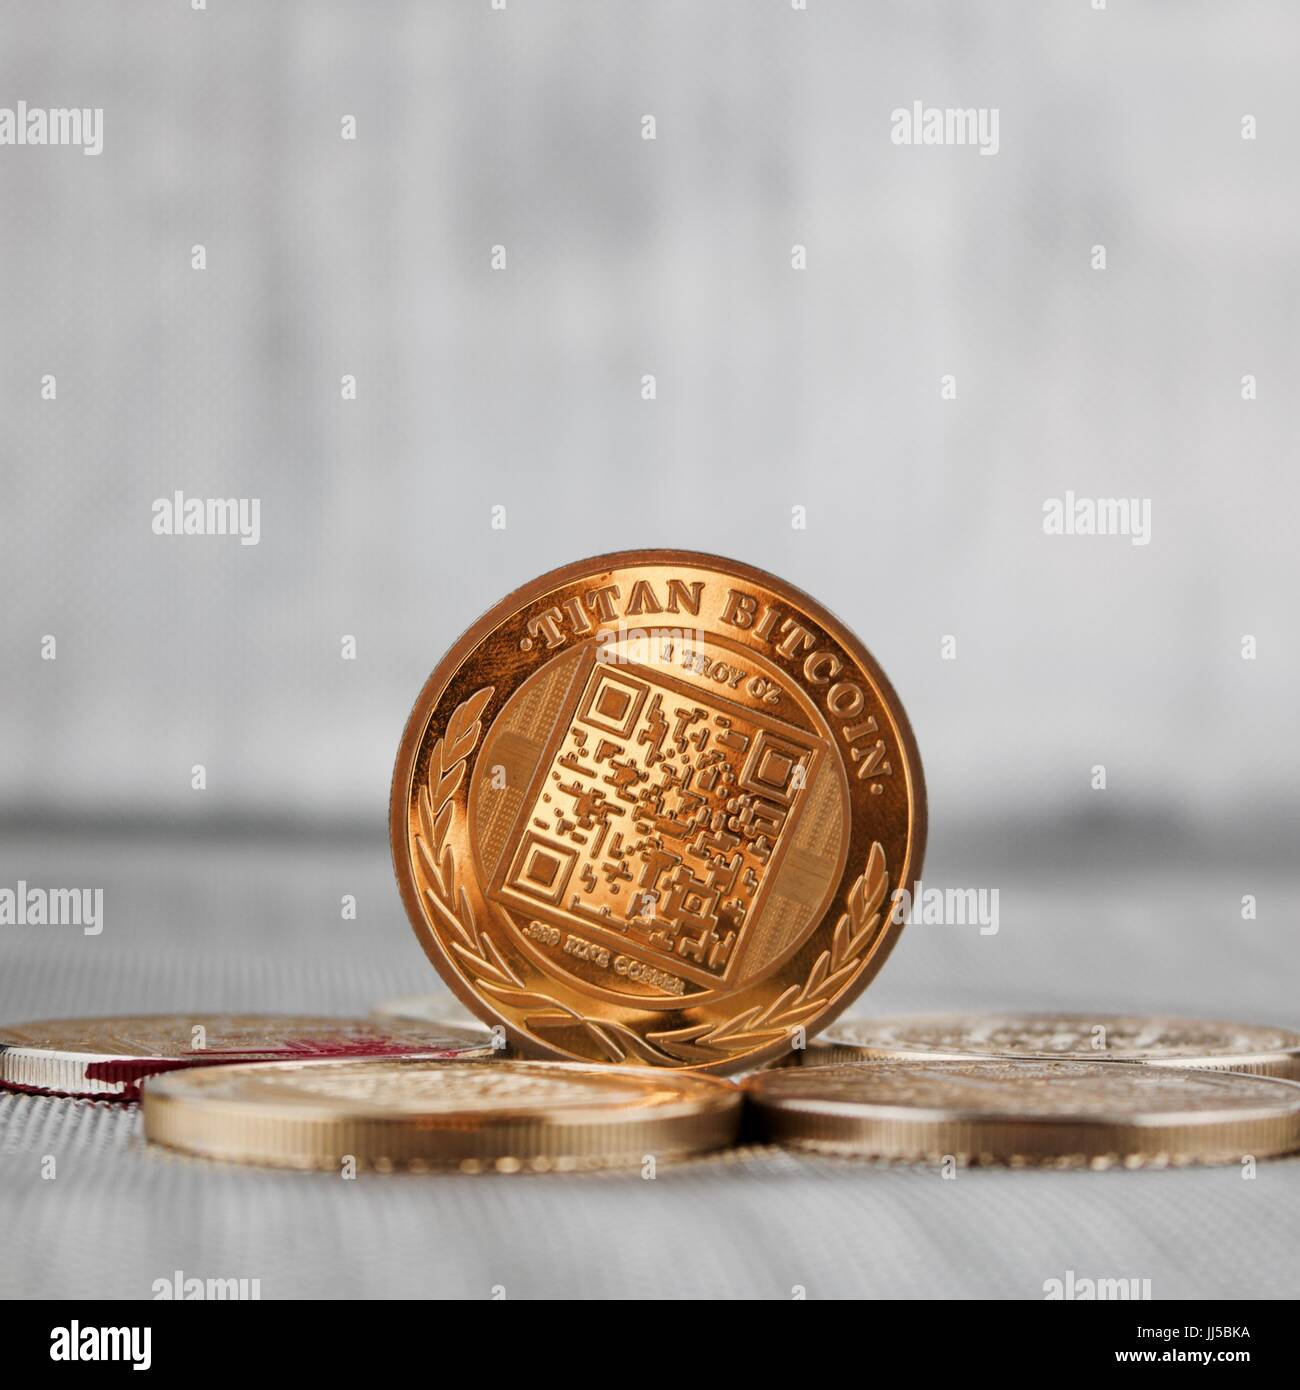 Digital currency physical gold titan bitcoin coin on the